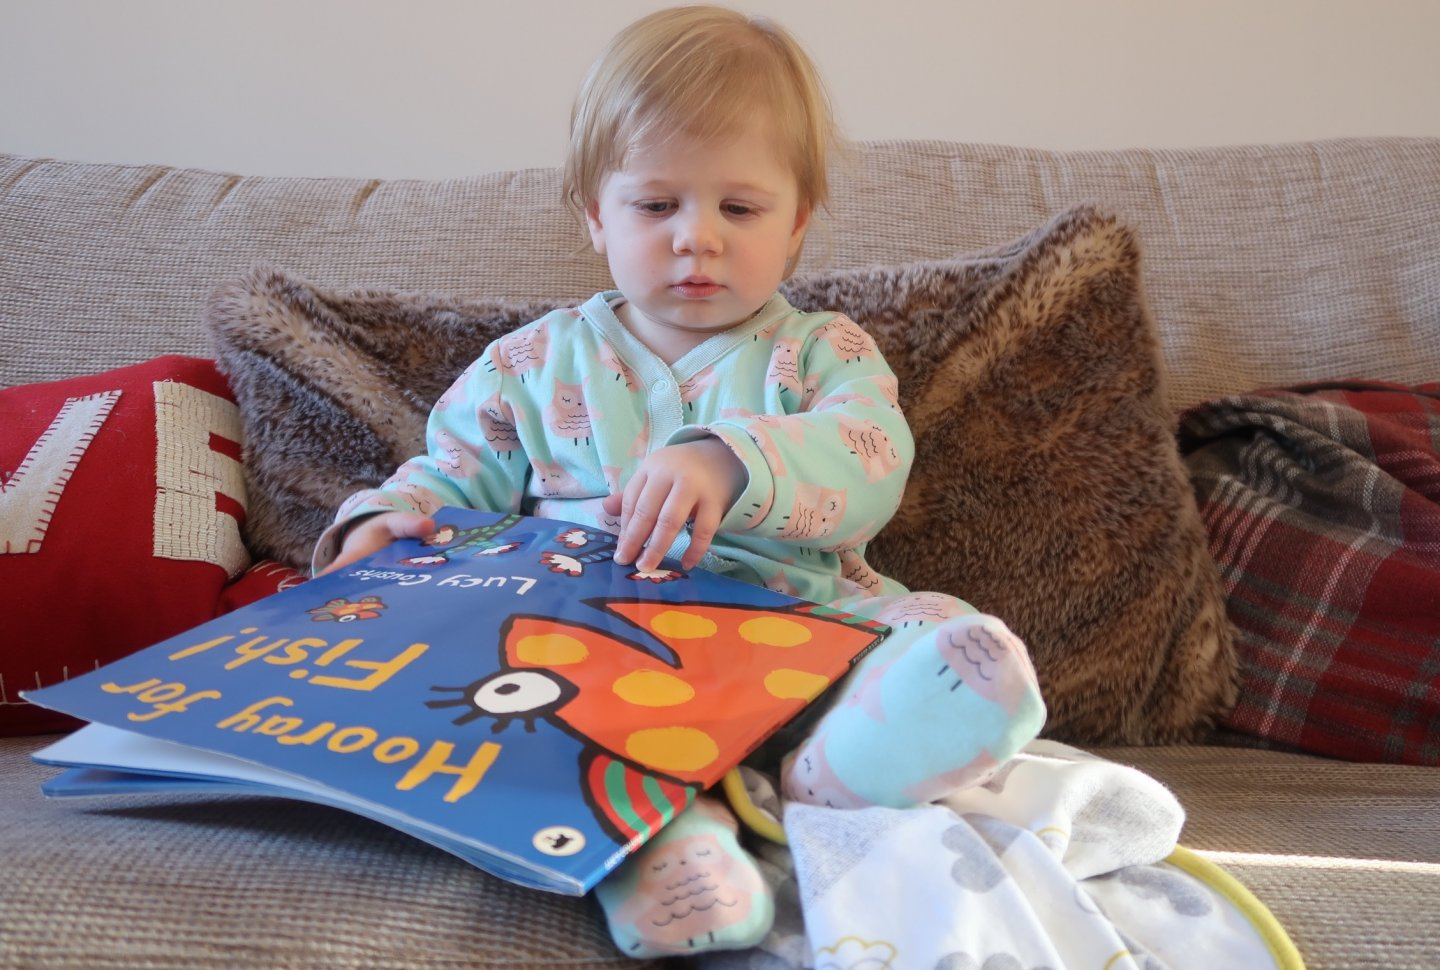 M sitting on the sofa reading 'Hooray for Fish!' by Lucy Cousins